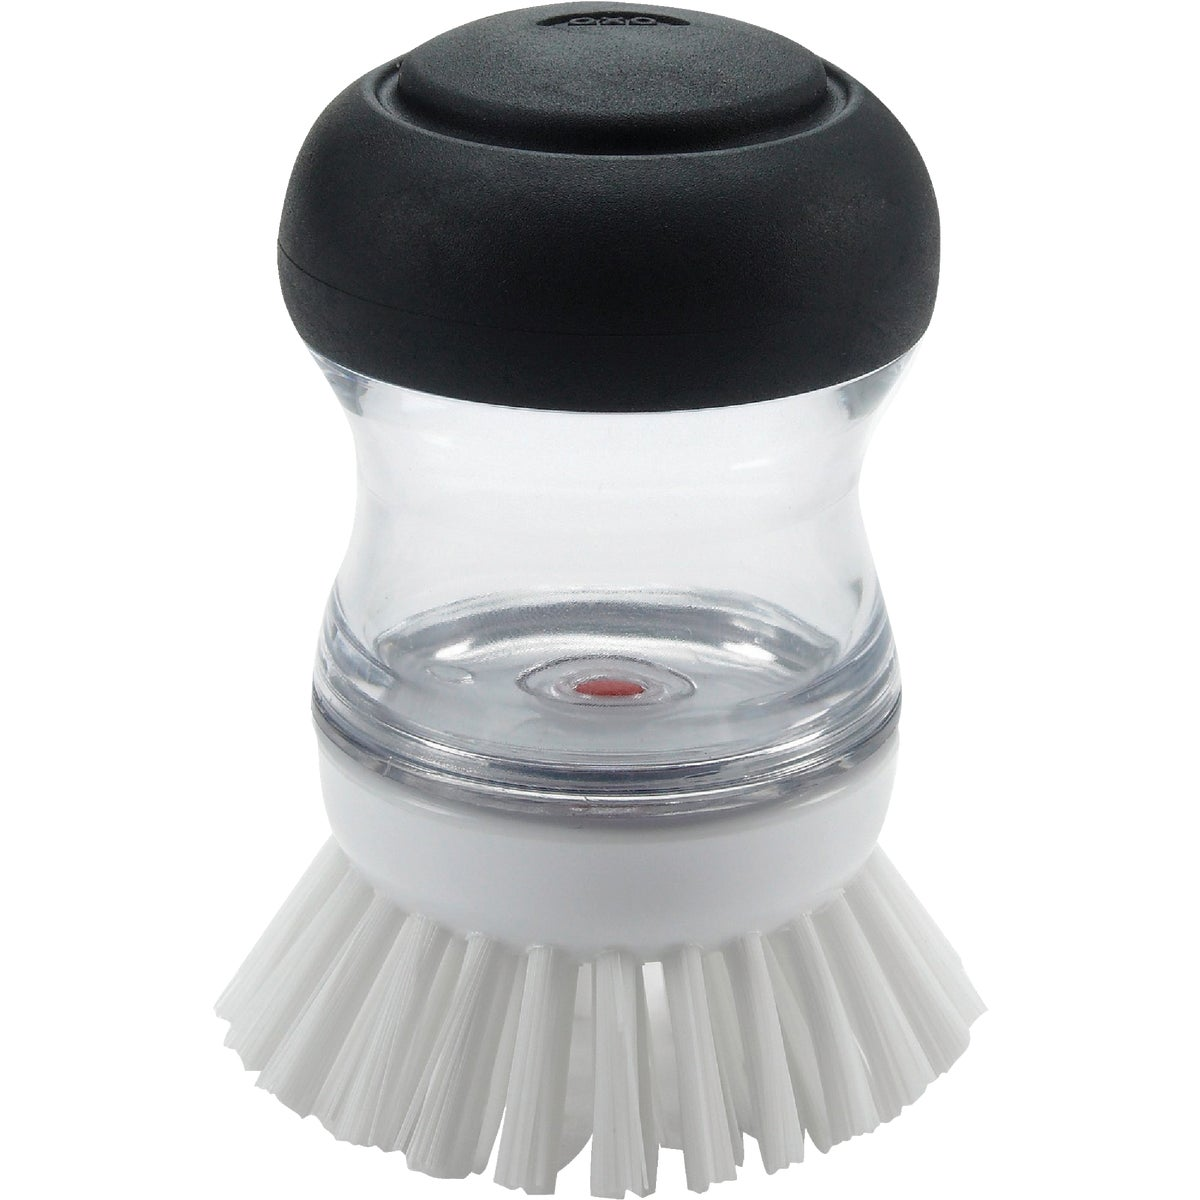 DISH BRUSH - 36481 by Oxo International